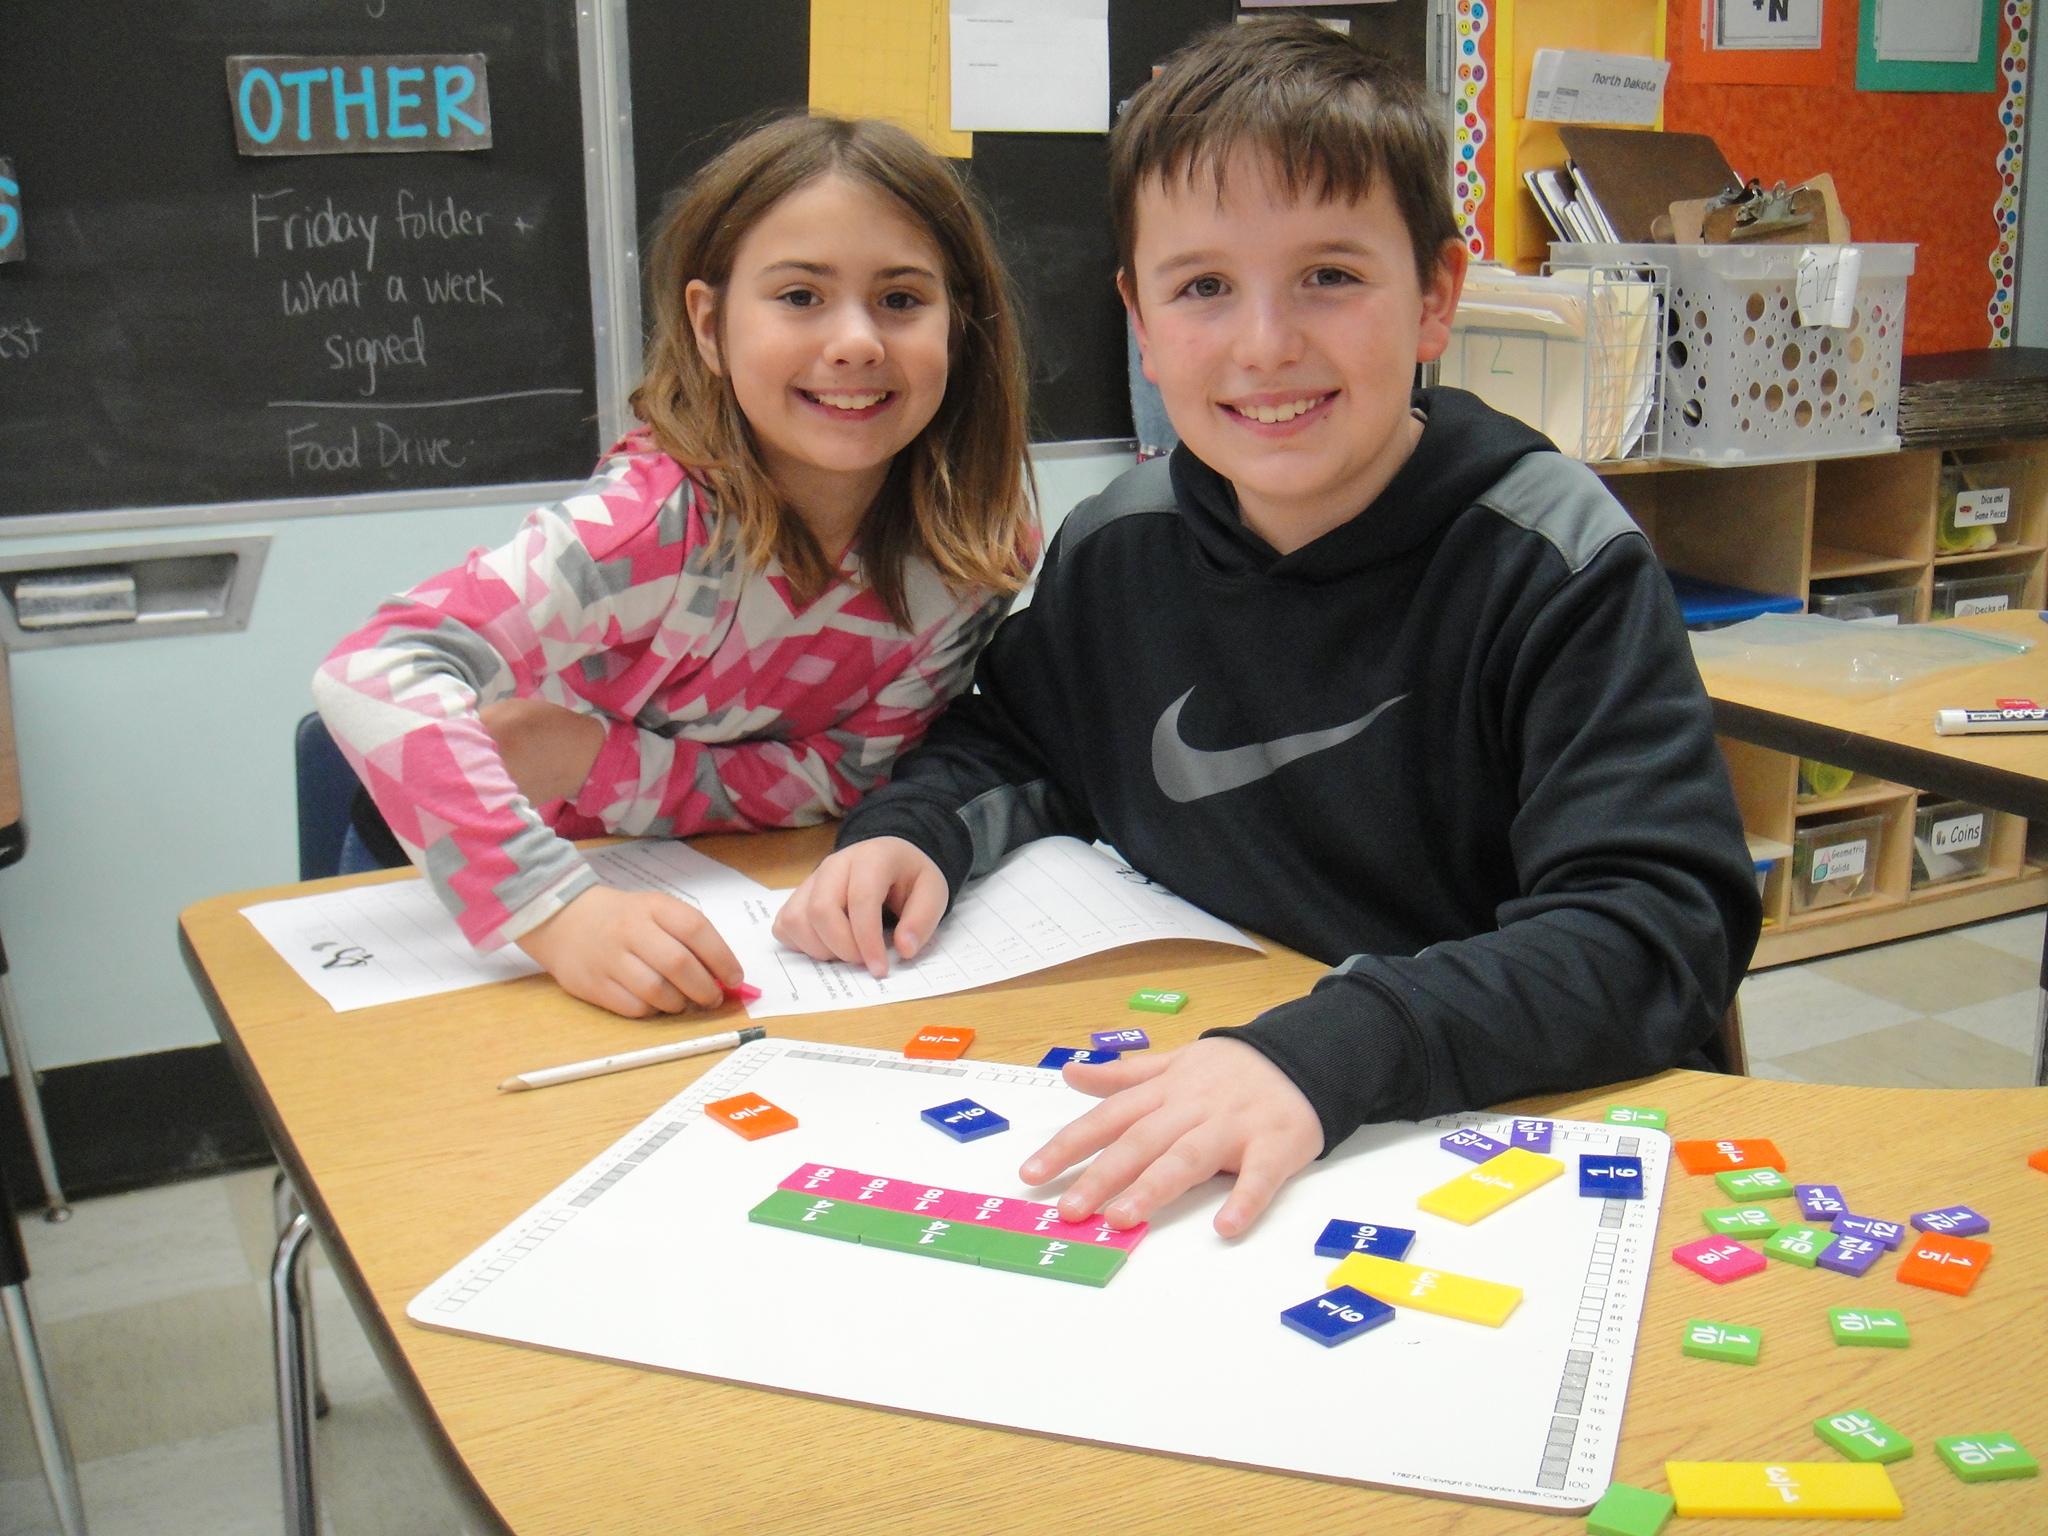 Two students working together